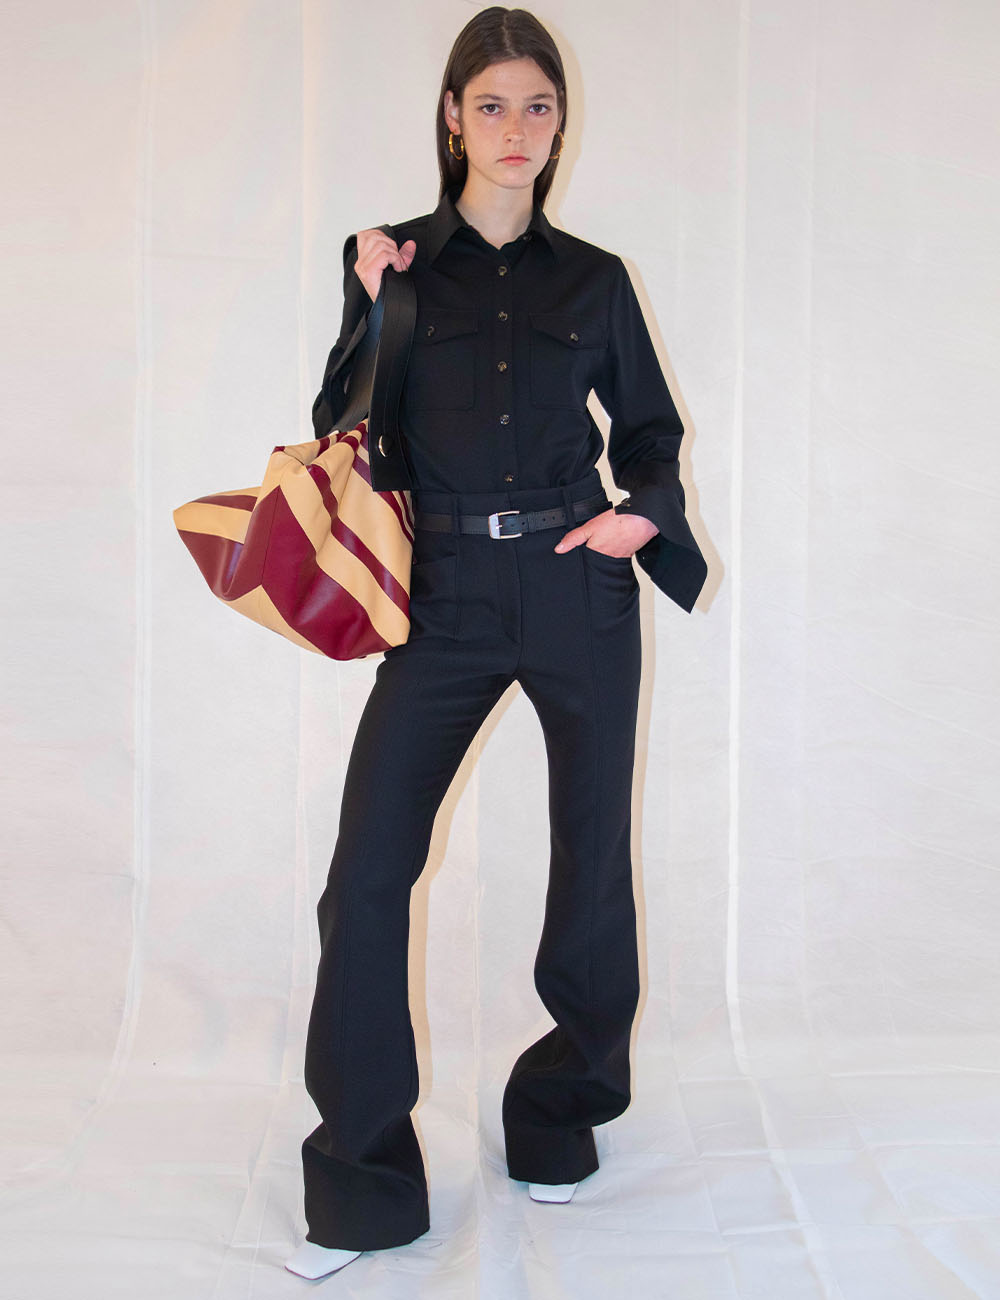 Black shirt and black pants with striped puffy tote